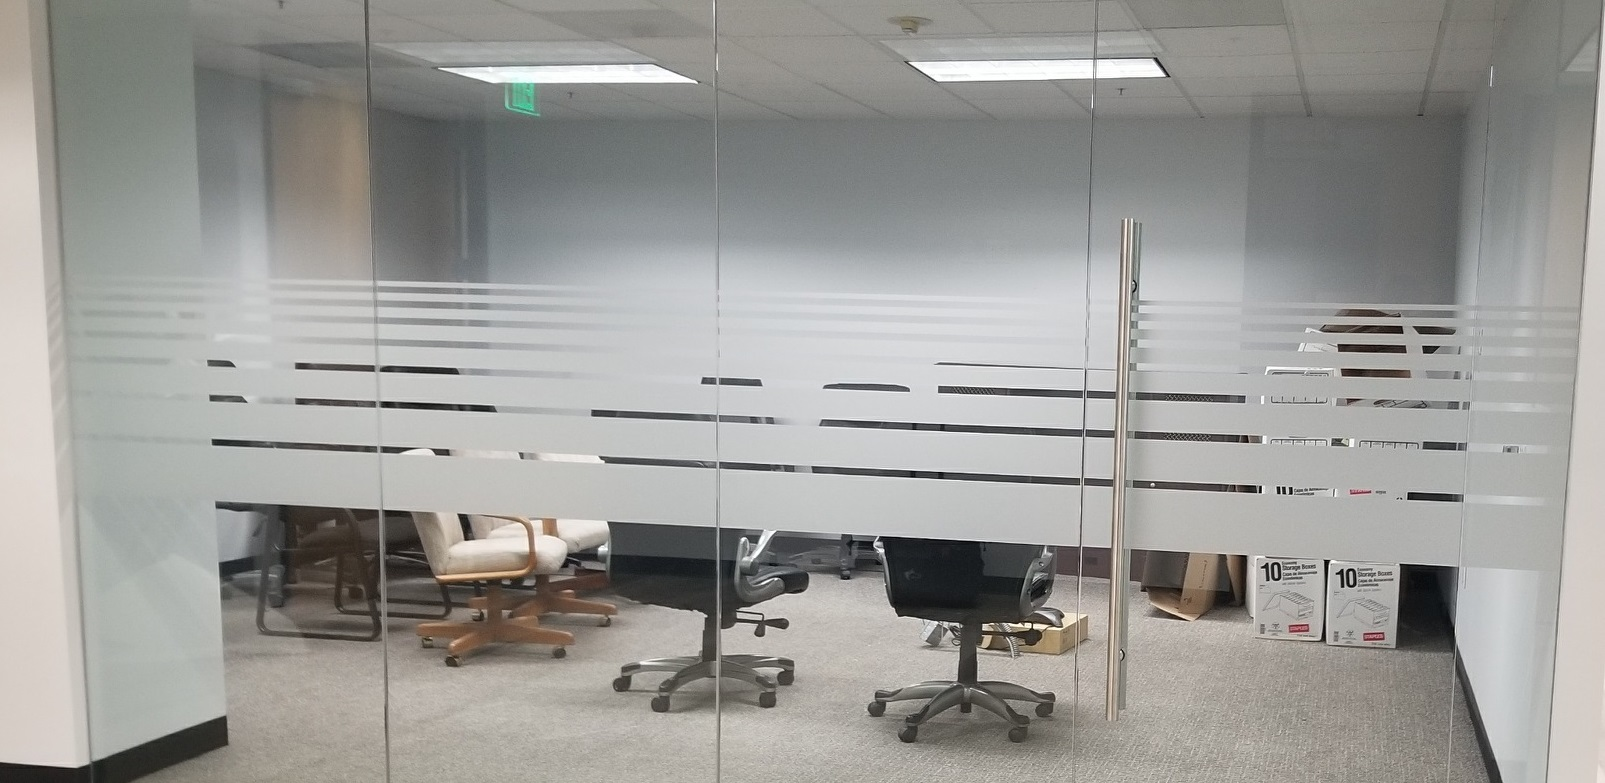 More signage for Schimmel and Parks. This time it is frosted vinyl office window graphics for the Sherman Oaks law firm's conference room.